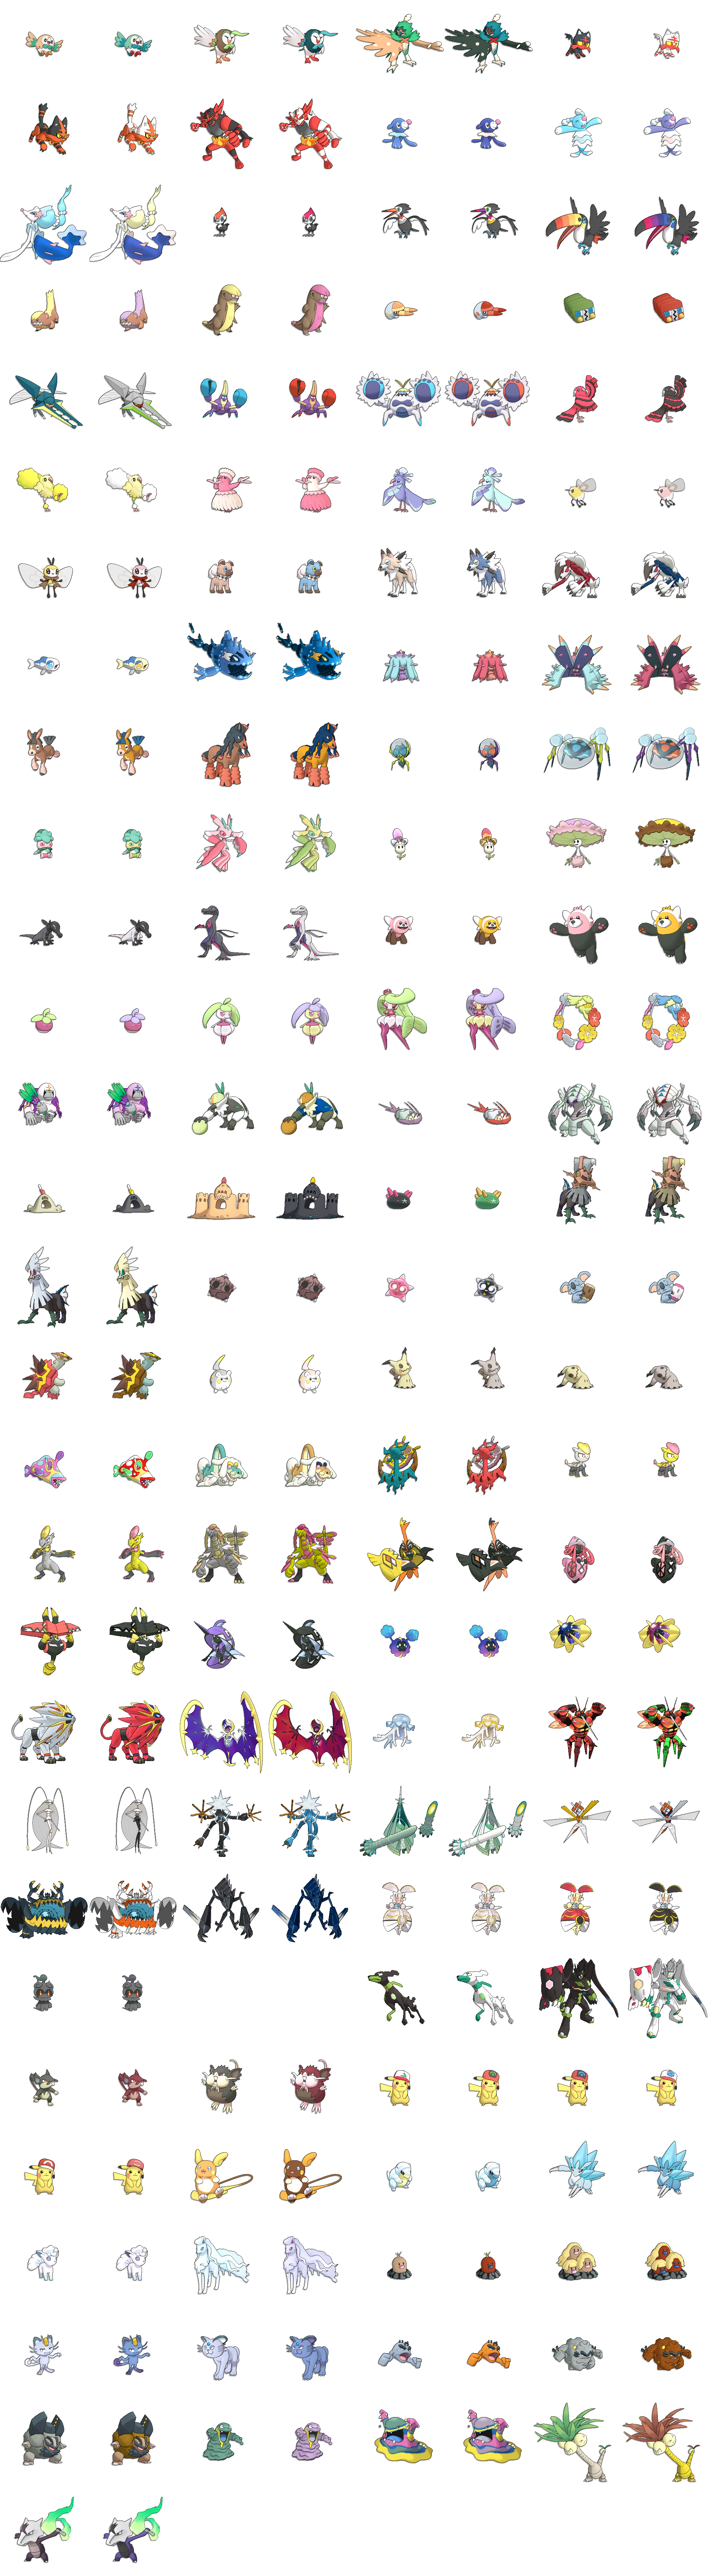 Gen 7 Sprite List WITH shiny forms (Excluding all Silvally forms